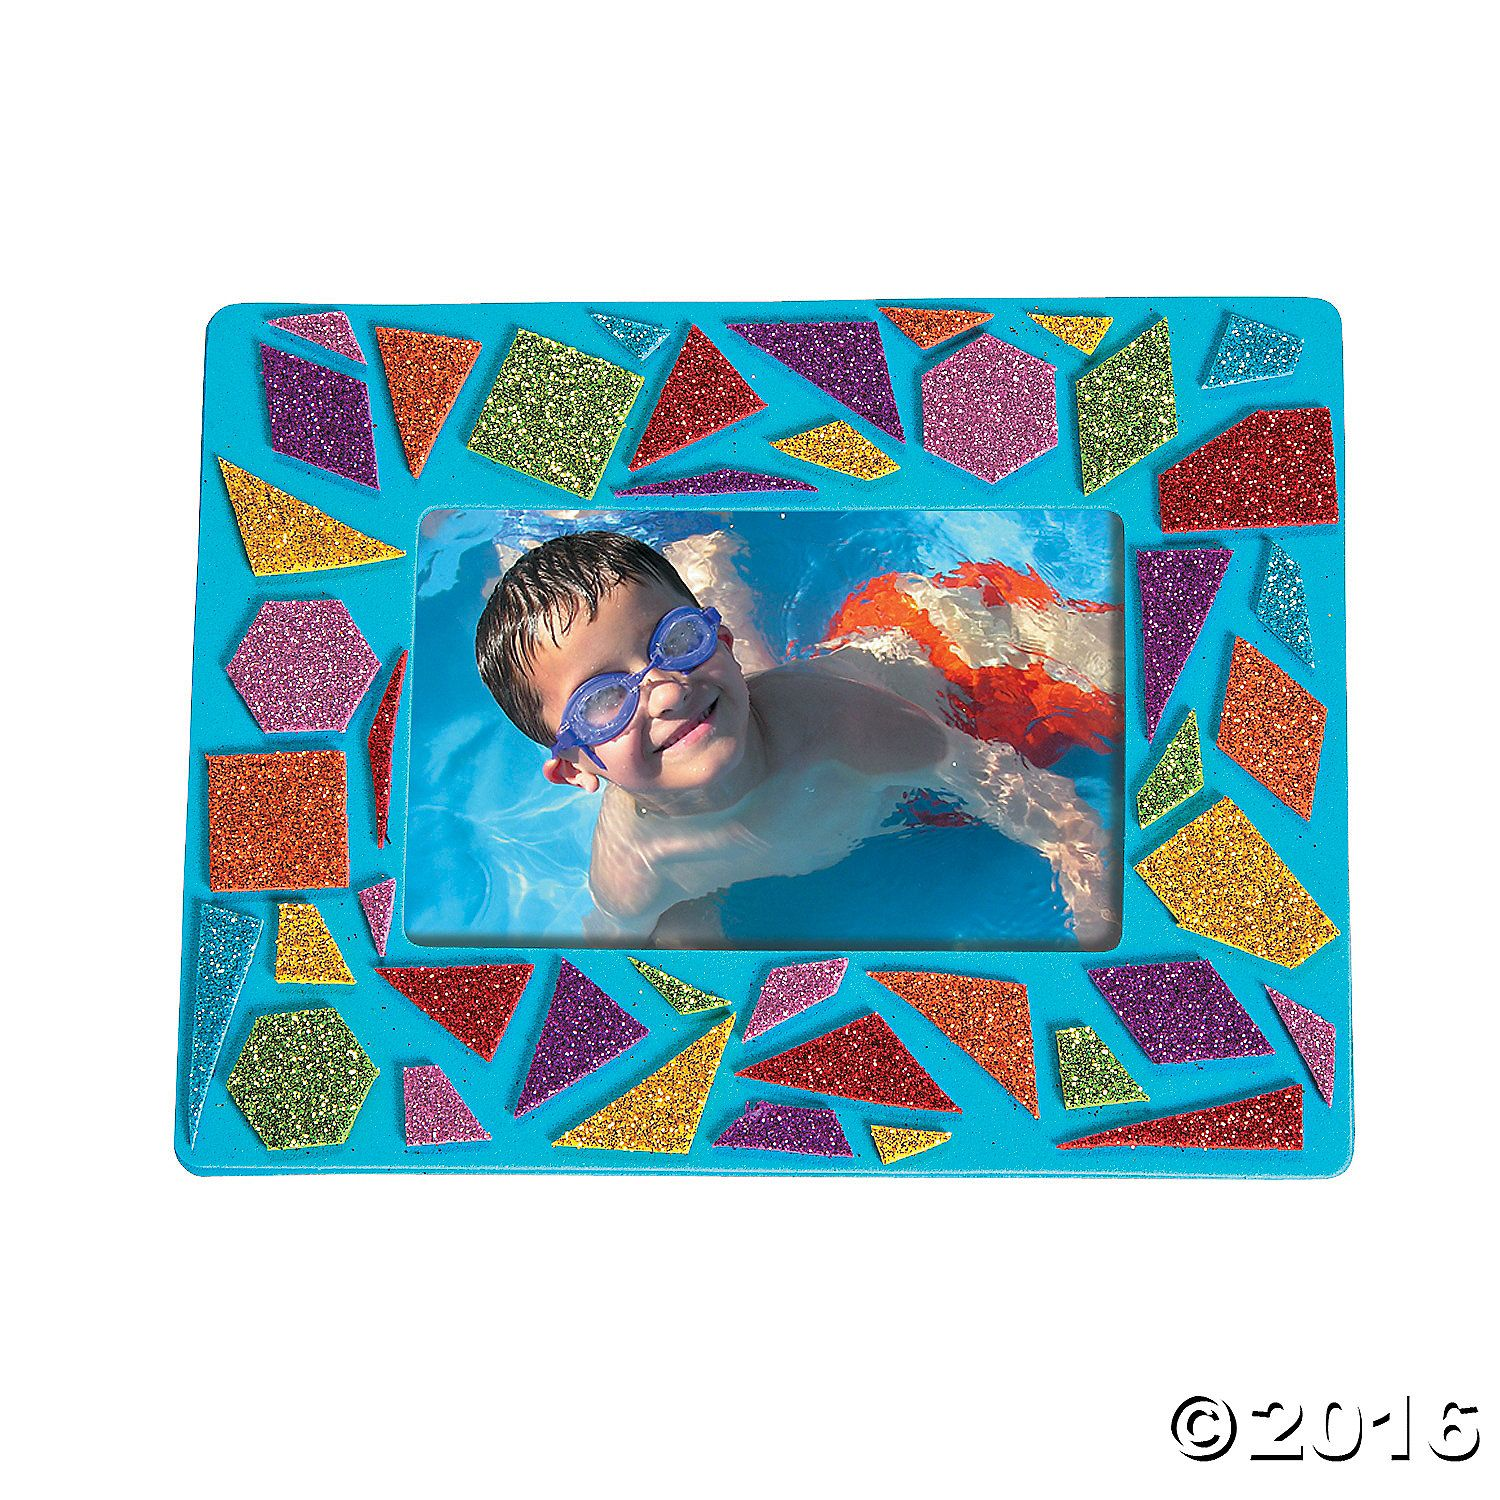 Display you favorite photo in a frame you created thanks to this mosaic picture frame kit photo crafts crafts for kids craft hobby supplies oriental trading jeuxipadfo Gallery